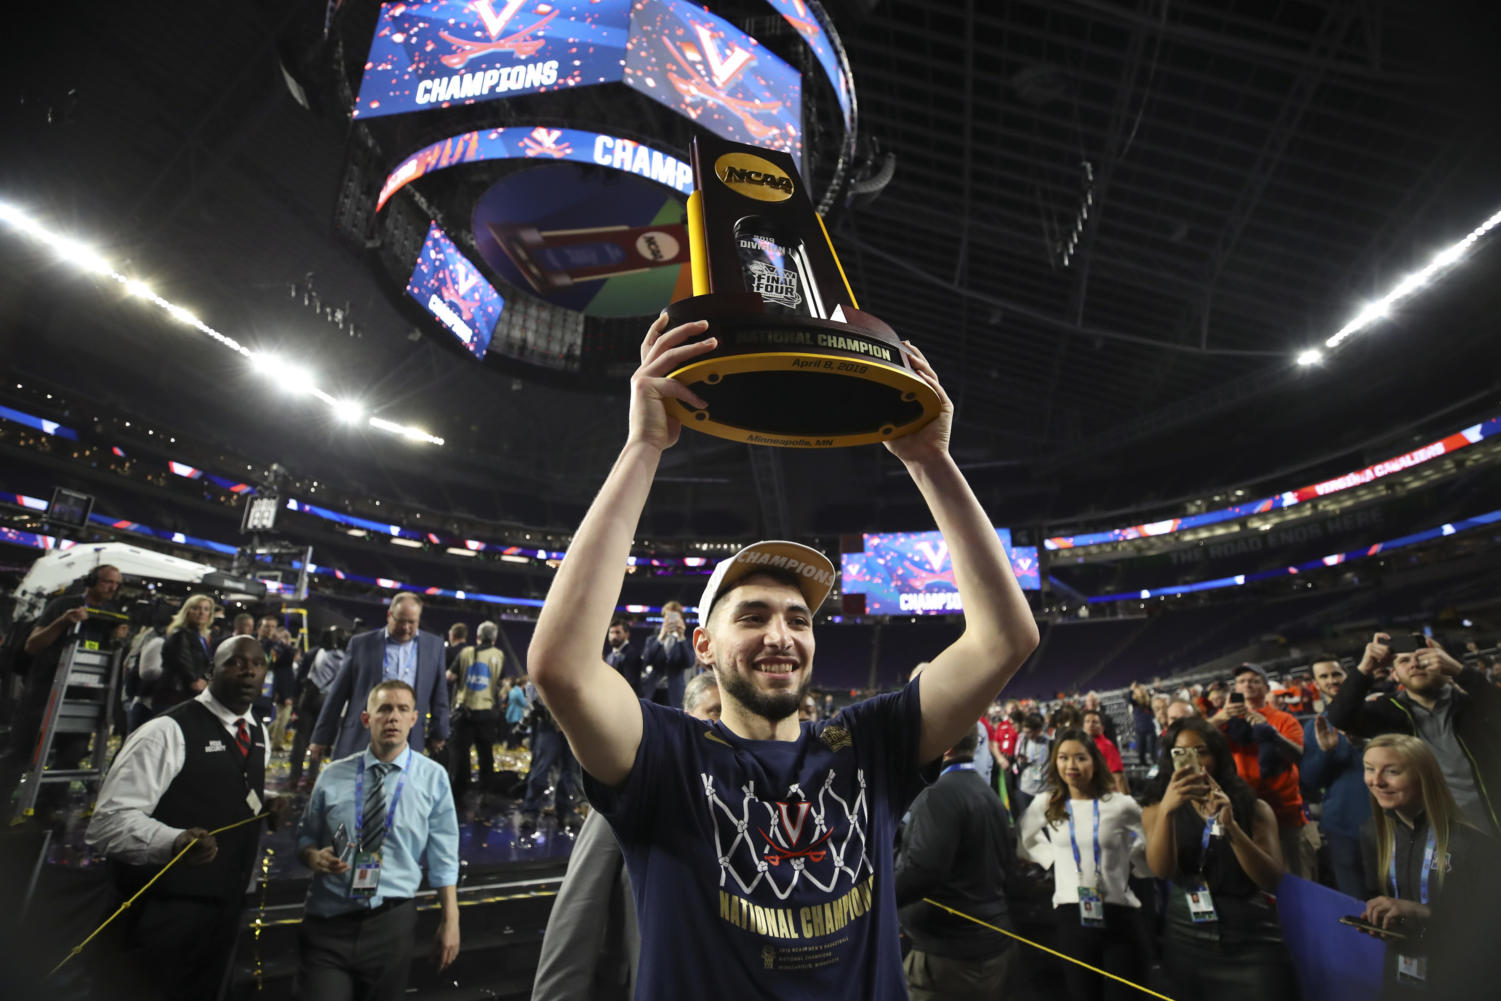 Virginia Cavaliers guard Ty Jerome hoists the championship trophy aloft as he walks off the court on Monday at U.S. Bank Stadium in Minneapolis. Virginia defeated Texas Tech 85-77 in overtime to win the NCAA Division I Men's Basketball Championship.